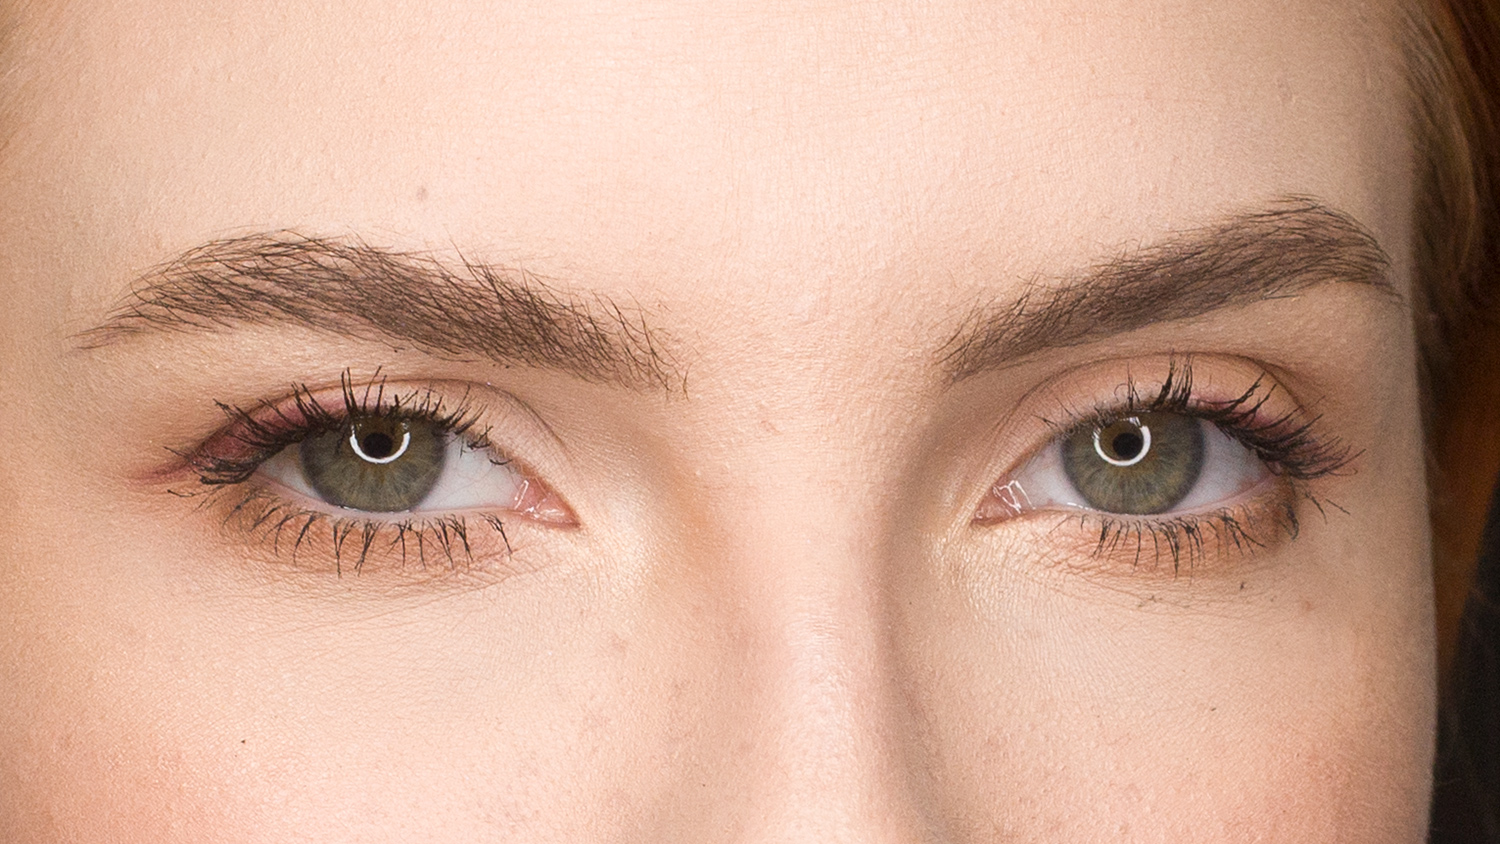 constricted pupils caused by ring lights